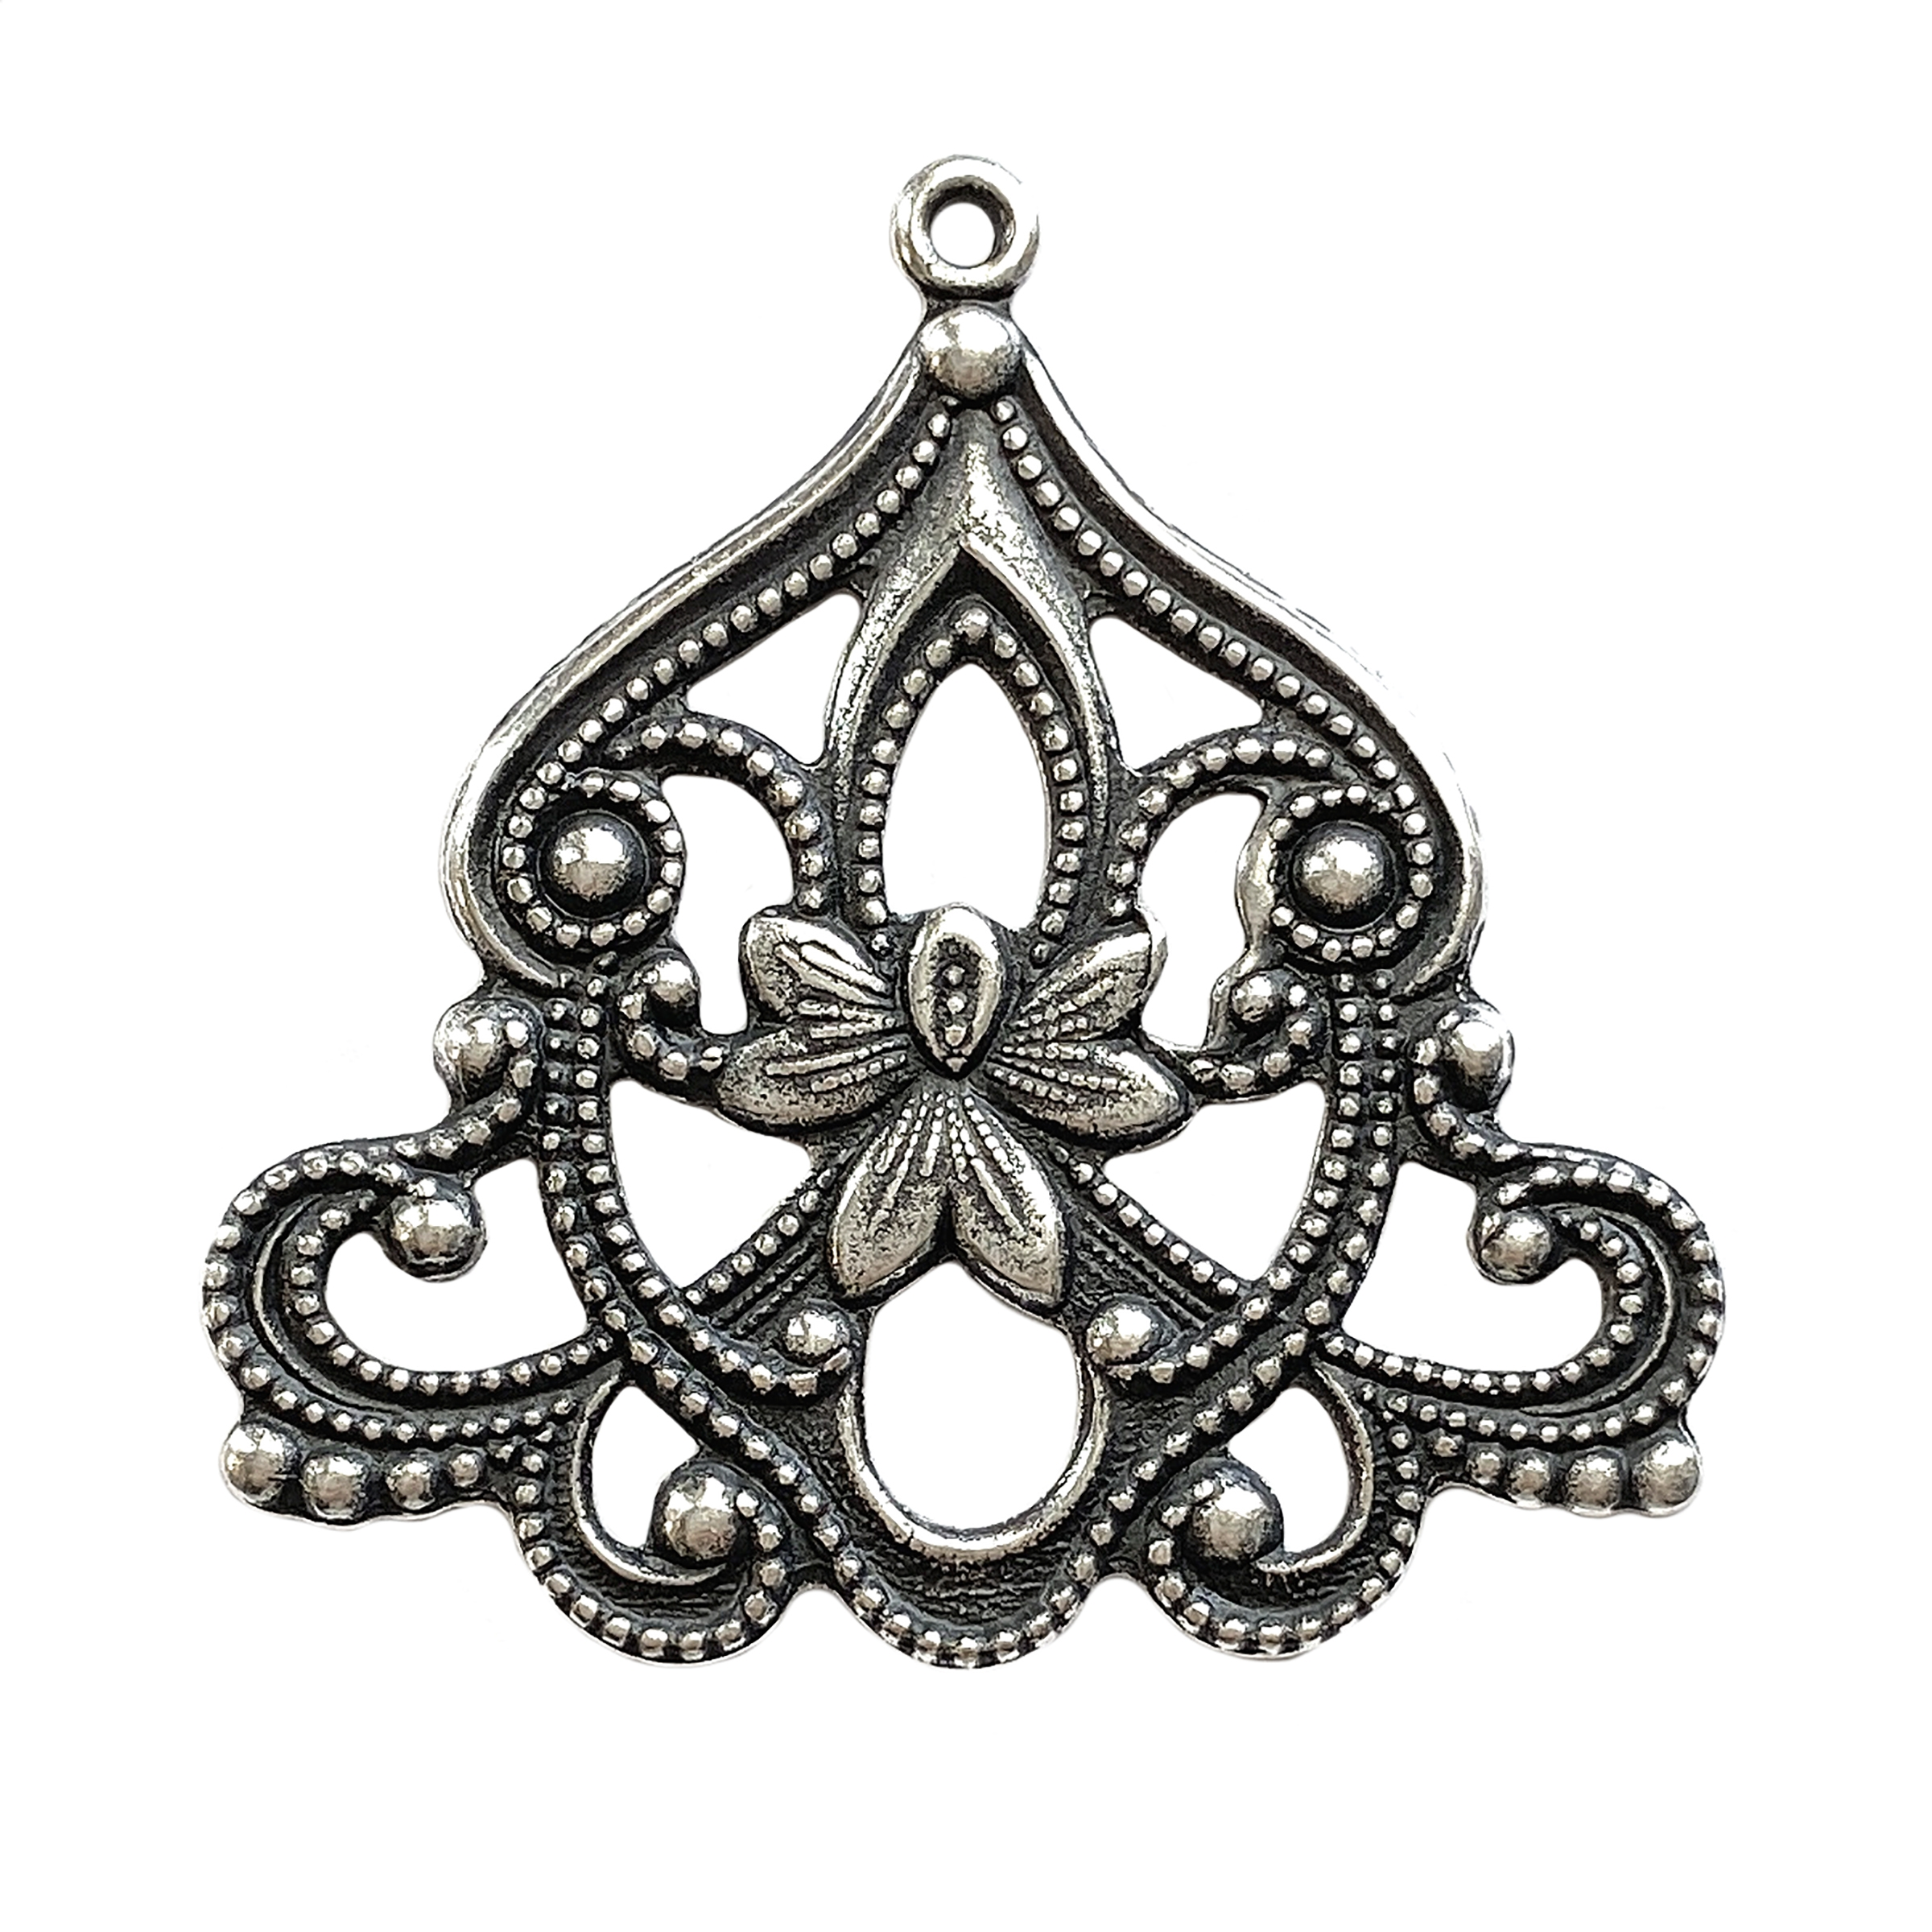 floral center pendant drop, silverware silverplate, silverware, silverplate, pendant drop, floral pendant, antique silver, filigree floral drop, filigree drop, jewelry making, jewelry supplies, vintage supplies, jewelry findings, B'sue, 39x40mm, 01309